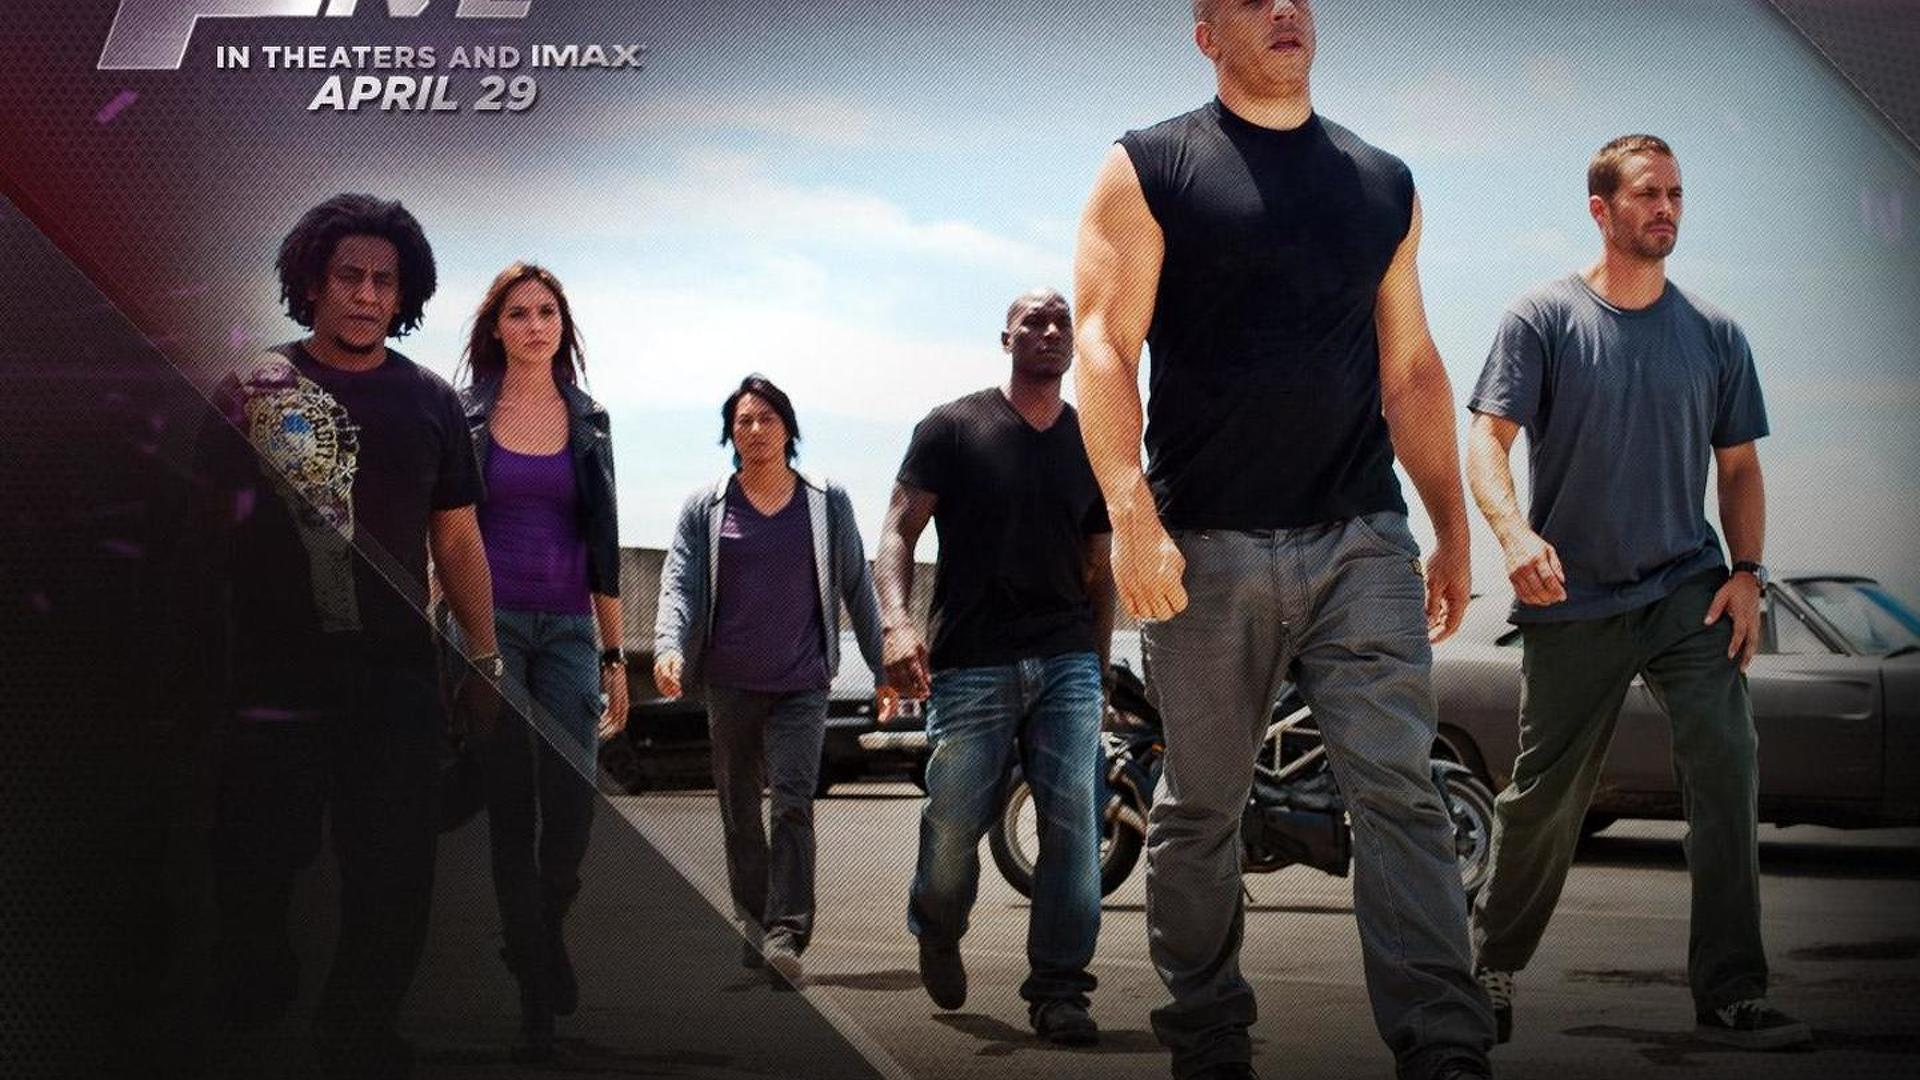 Extended scene from Fast Five online [video]